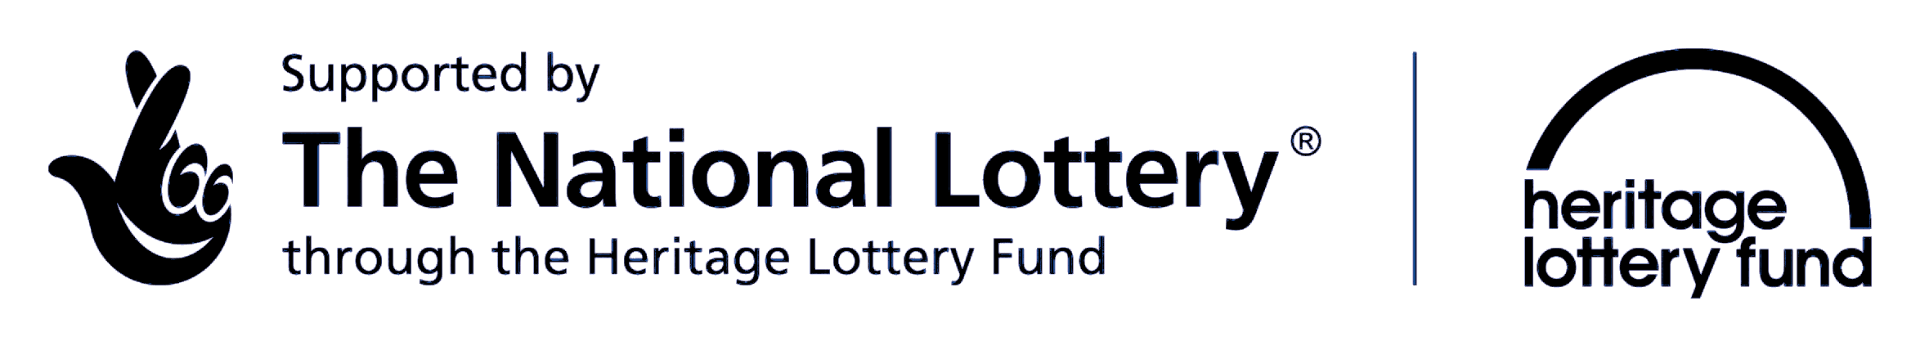 Heritage lottery fund award